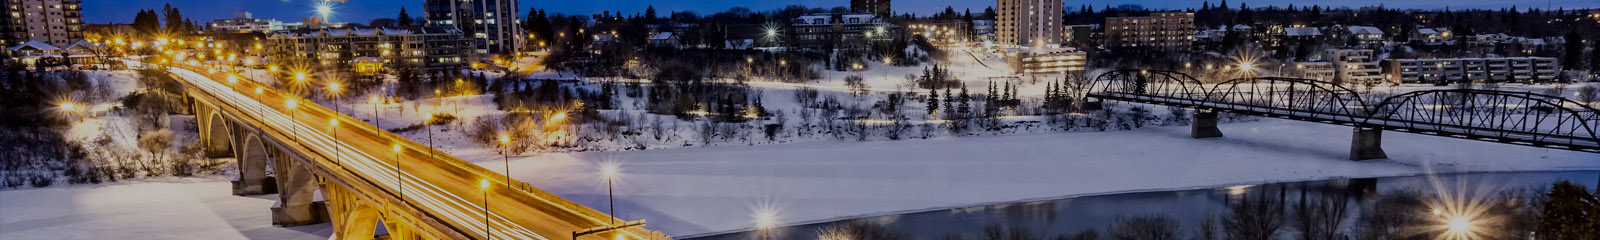 A complete city guide to Saskatoon, Saskatchewan, from the top reasons to visit, how much it costs to live in Saskatoon, and more.